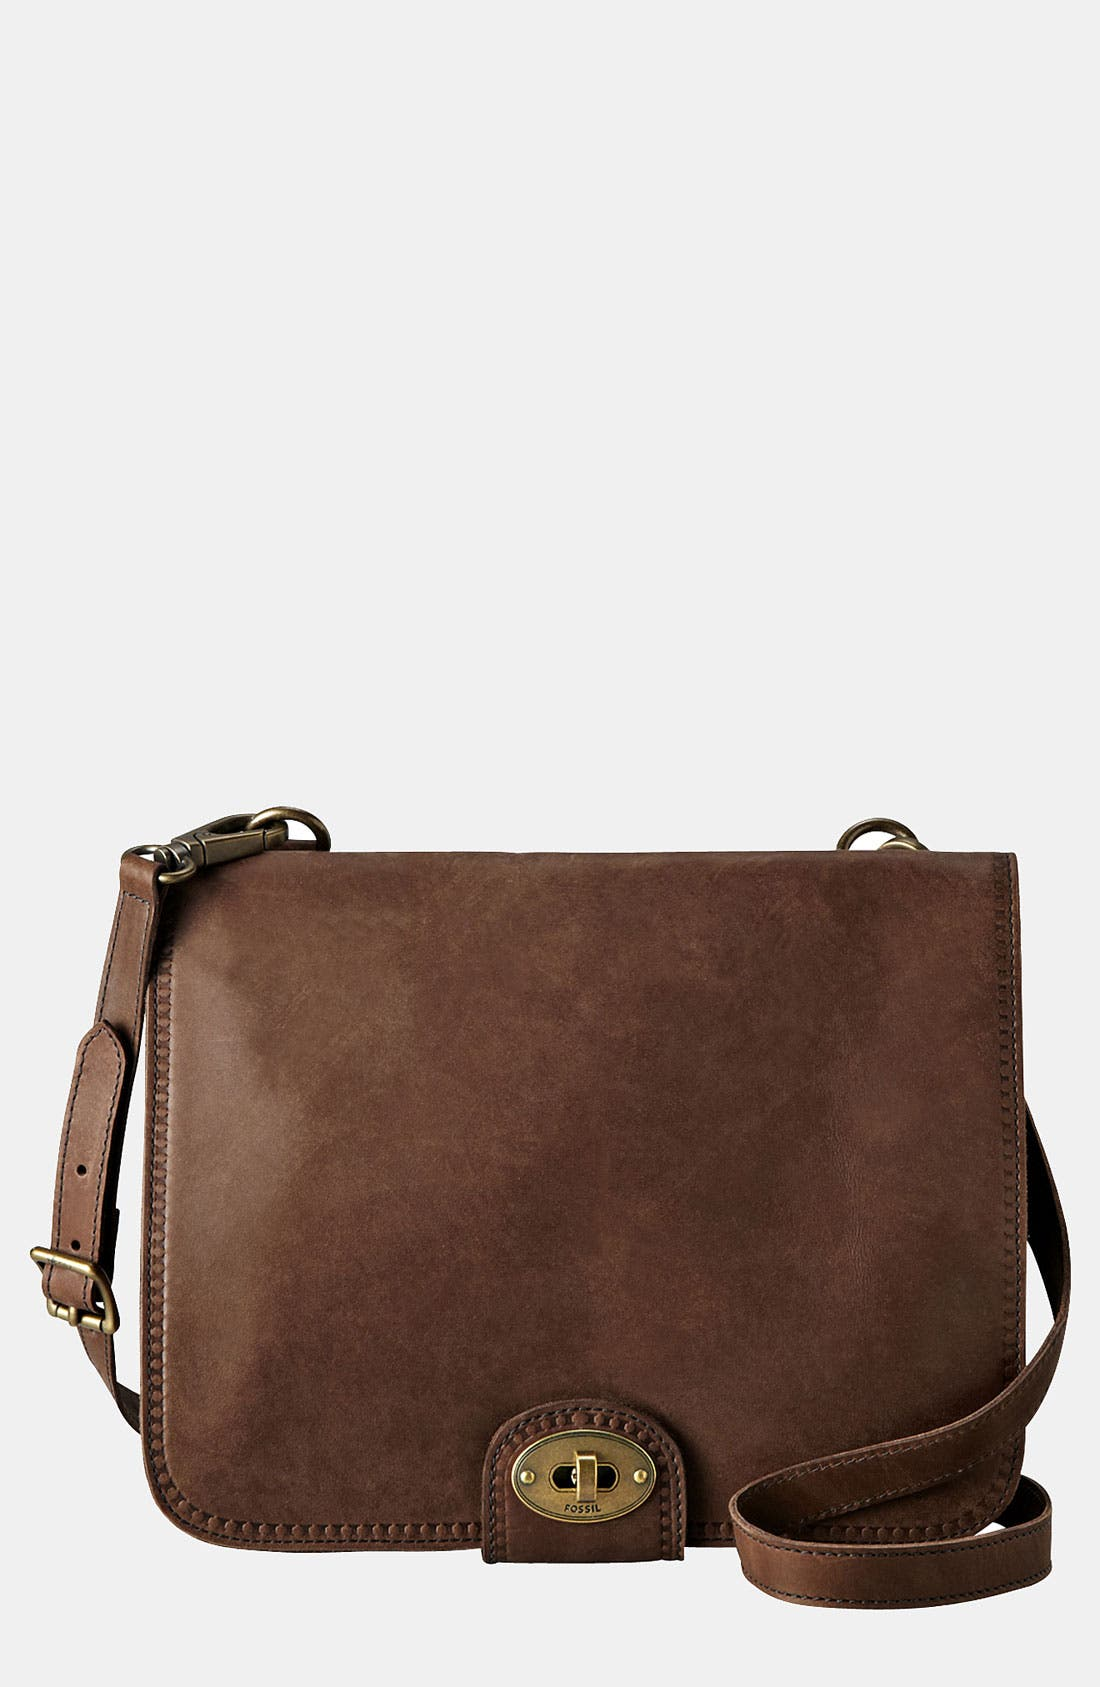 Main Image - Fossil Crossbody Bag